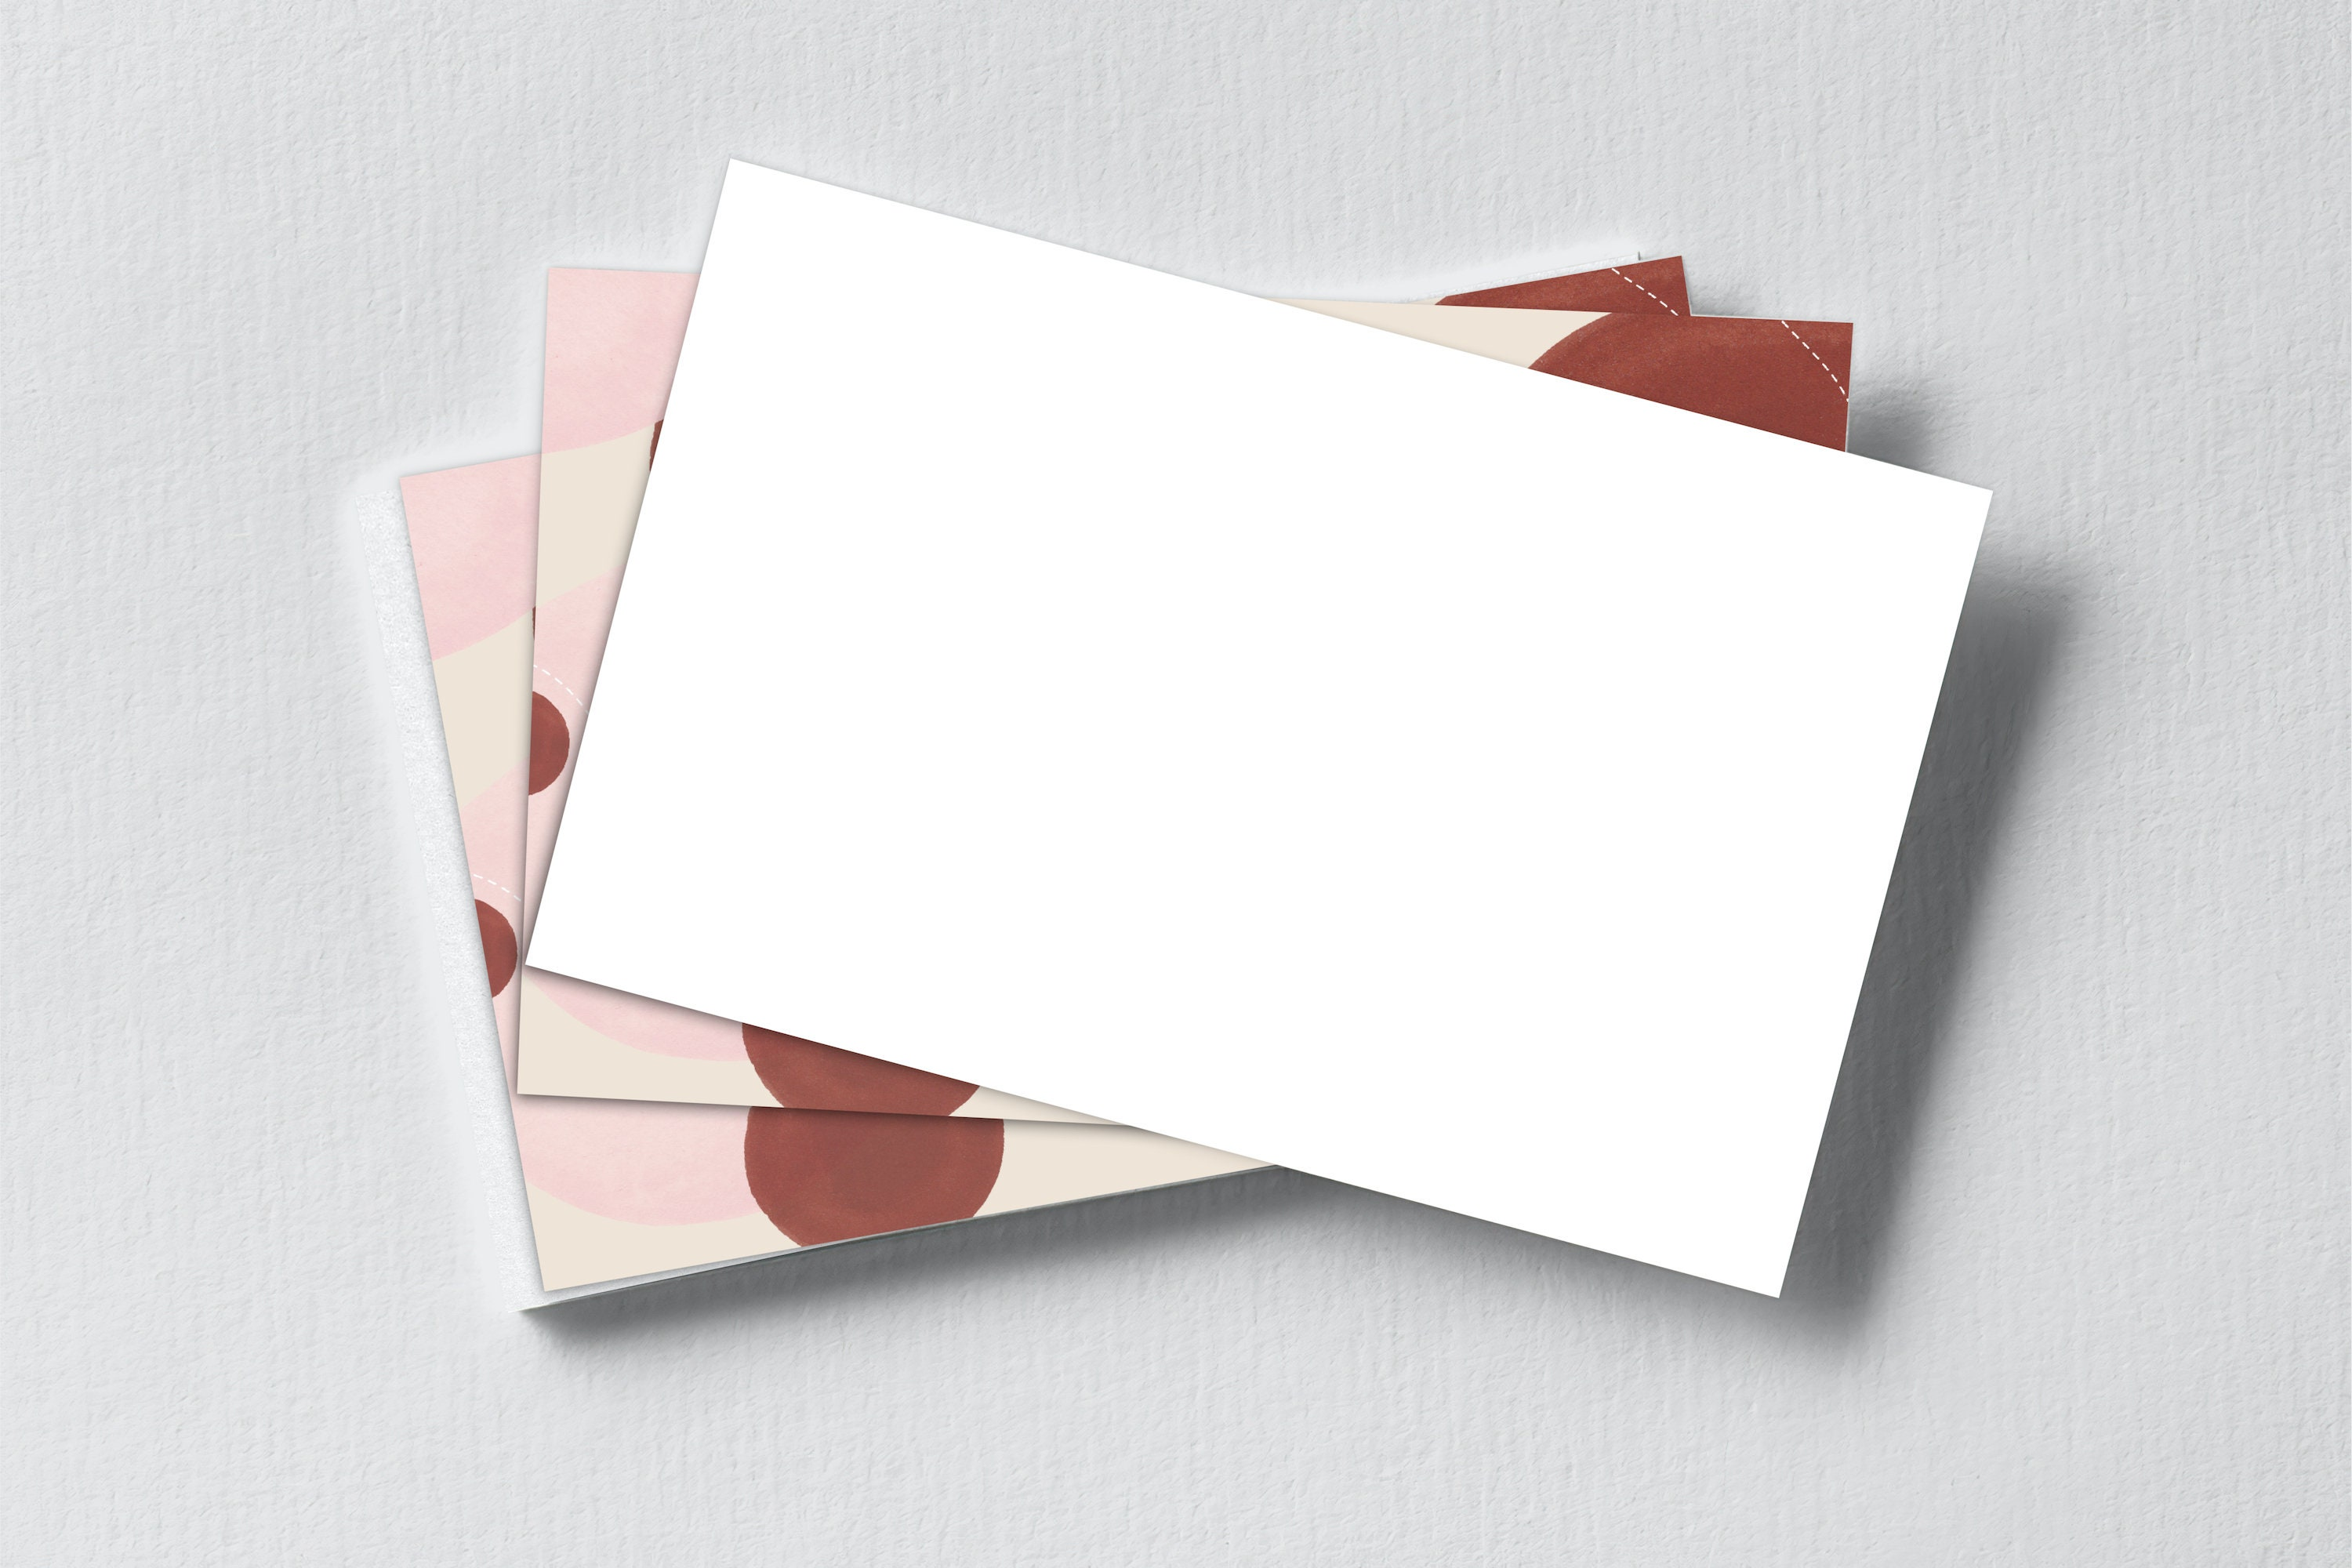 A stack of notecards. The postcard on the top is face down, showing that the back is left completely blank.